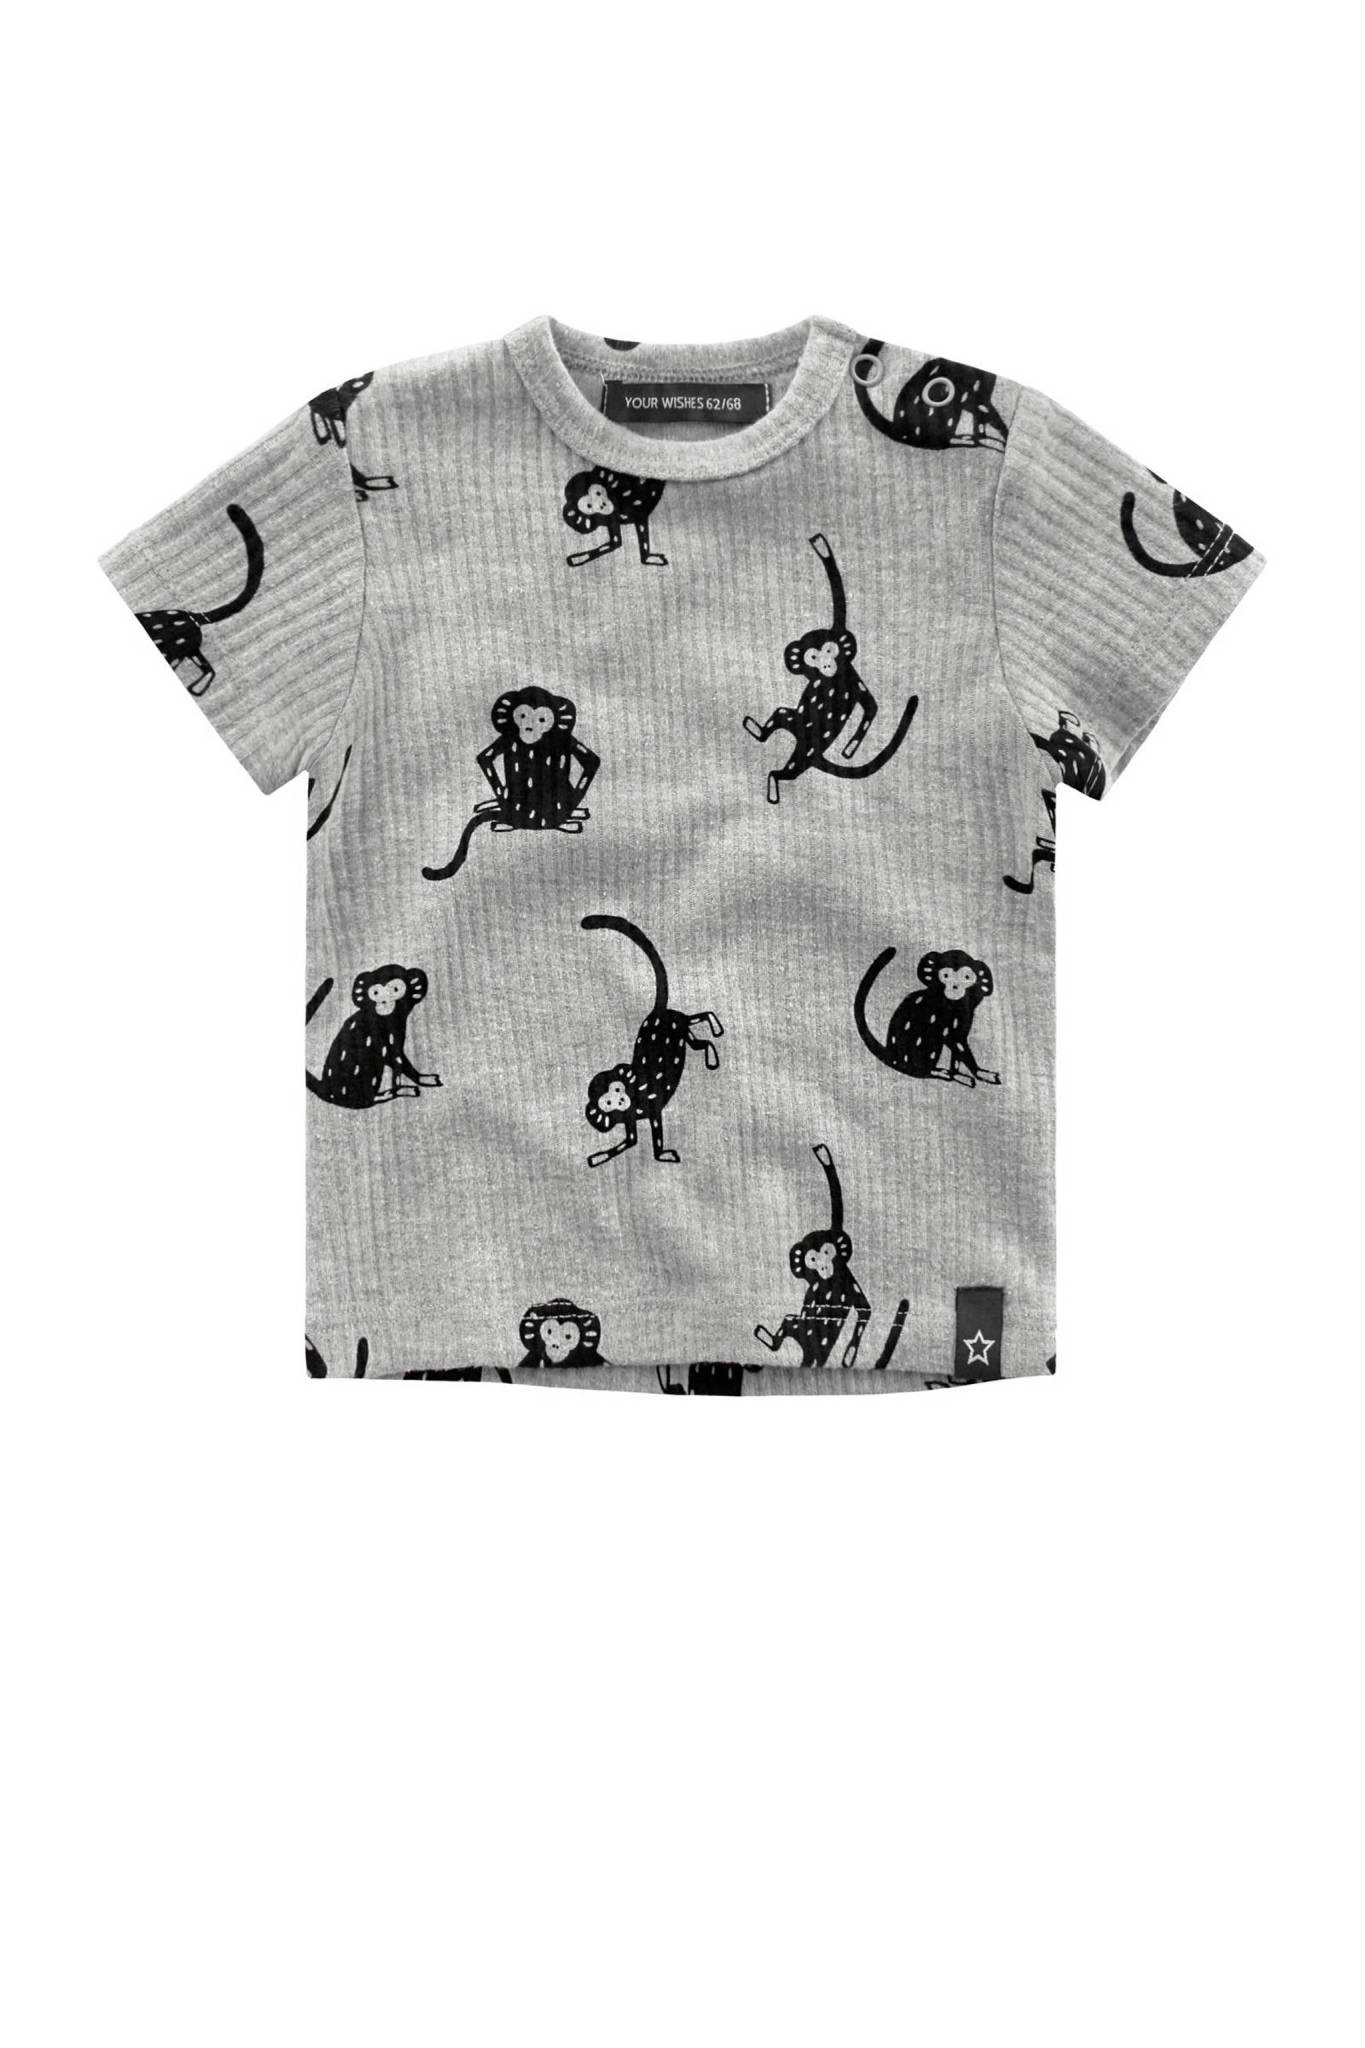 Your Wishes Your Wishes - Monkey Business Shortsleeve t-shirt